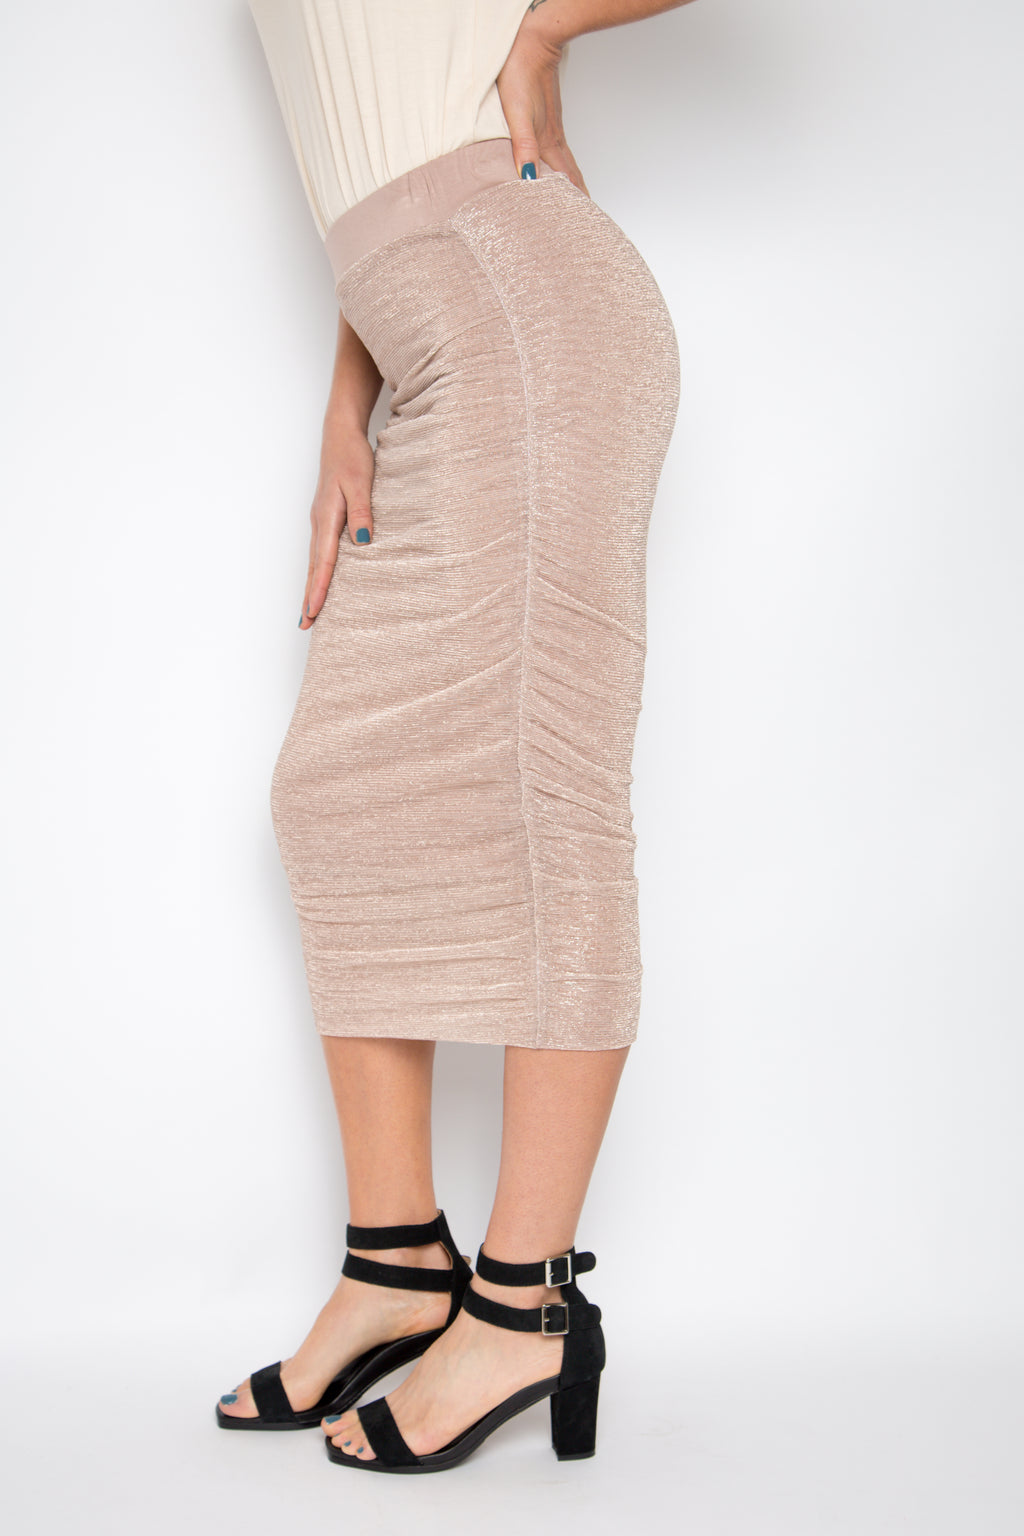 Midi Ruche Skirt in Mauve Mist